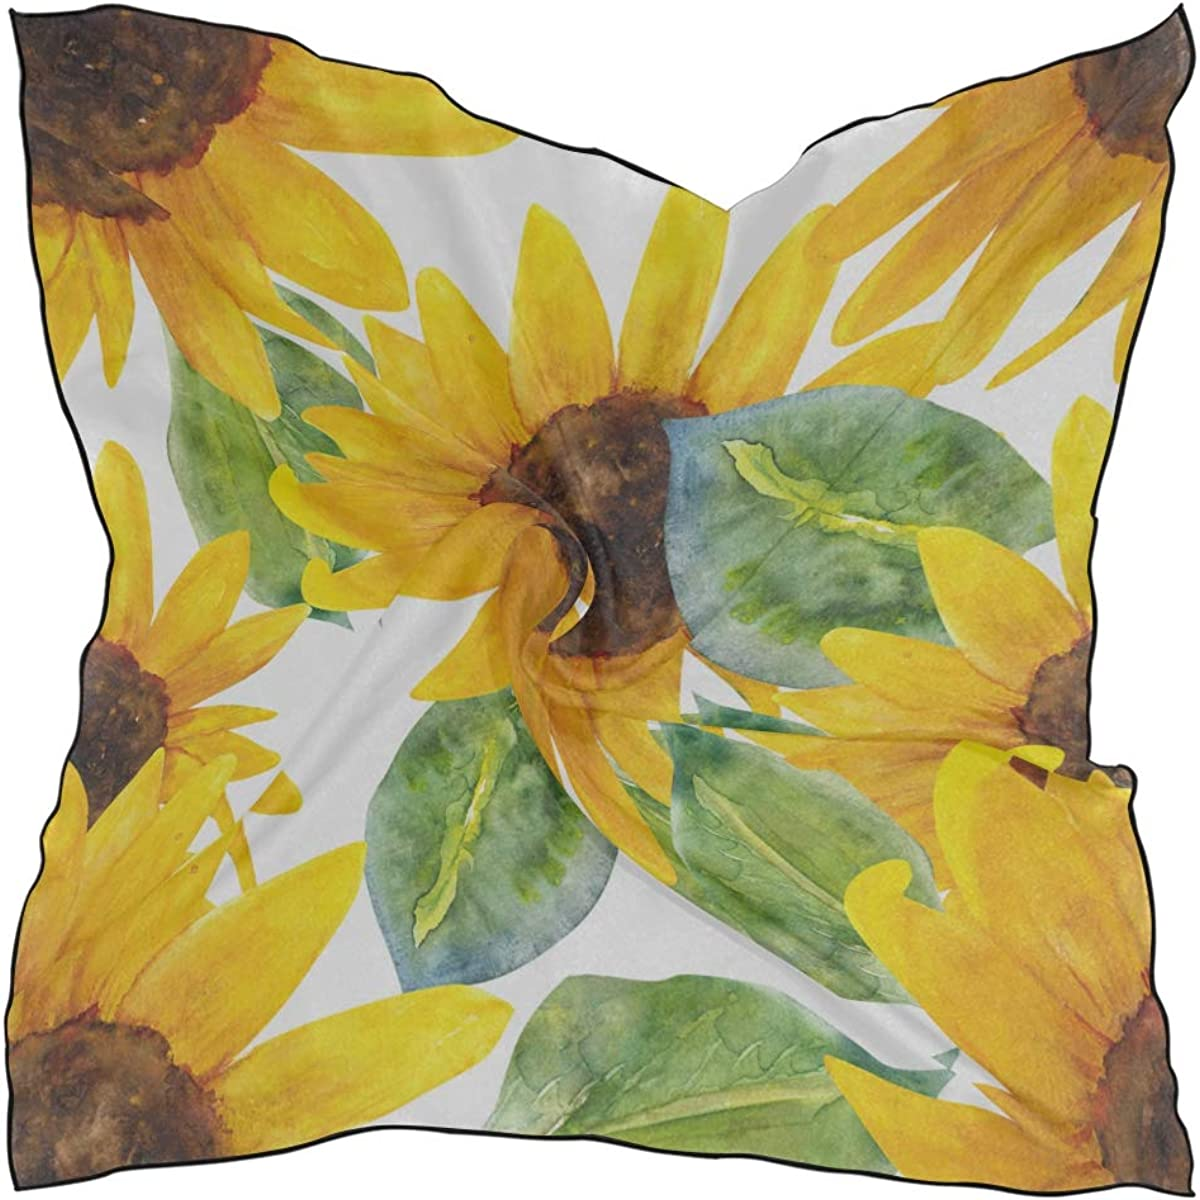 Women's Soft Polyester Silk Square Scarf Sunflower Watercolor Painting Art Yellow Landscape Flower Sea Fashion Print Head & Hair Scarf Neckerchief Accessory-23.6x23.6 Inch